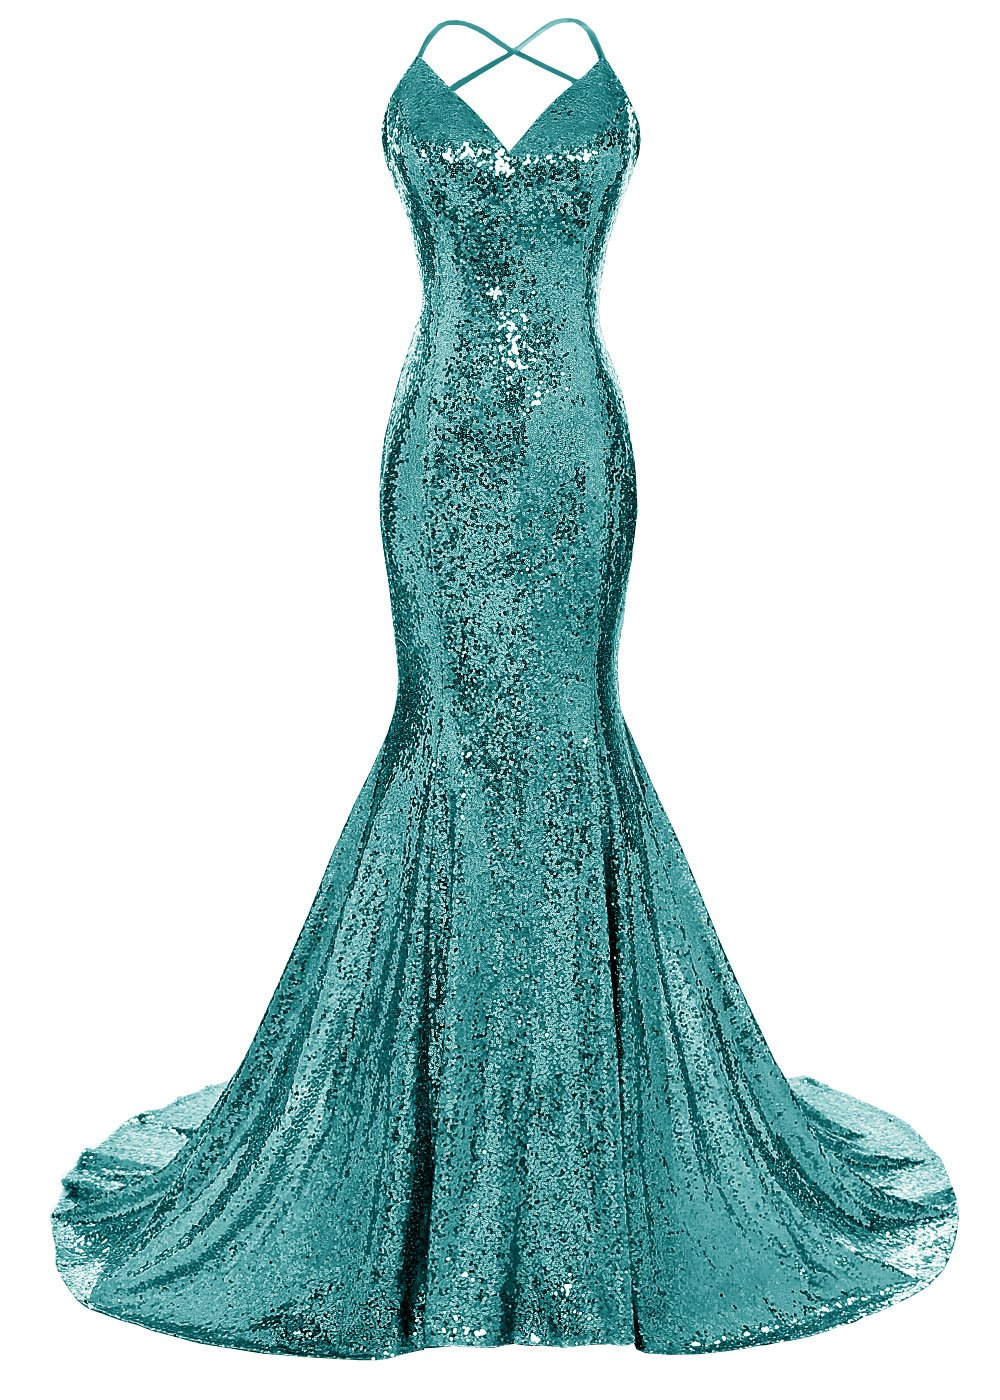 Available at Amazon: Dys Women's Sequins Mermaid Prom Dress Spaghetti Straps V Neck Backless Gowns